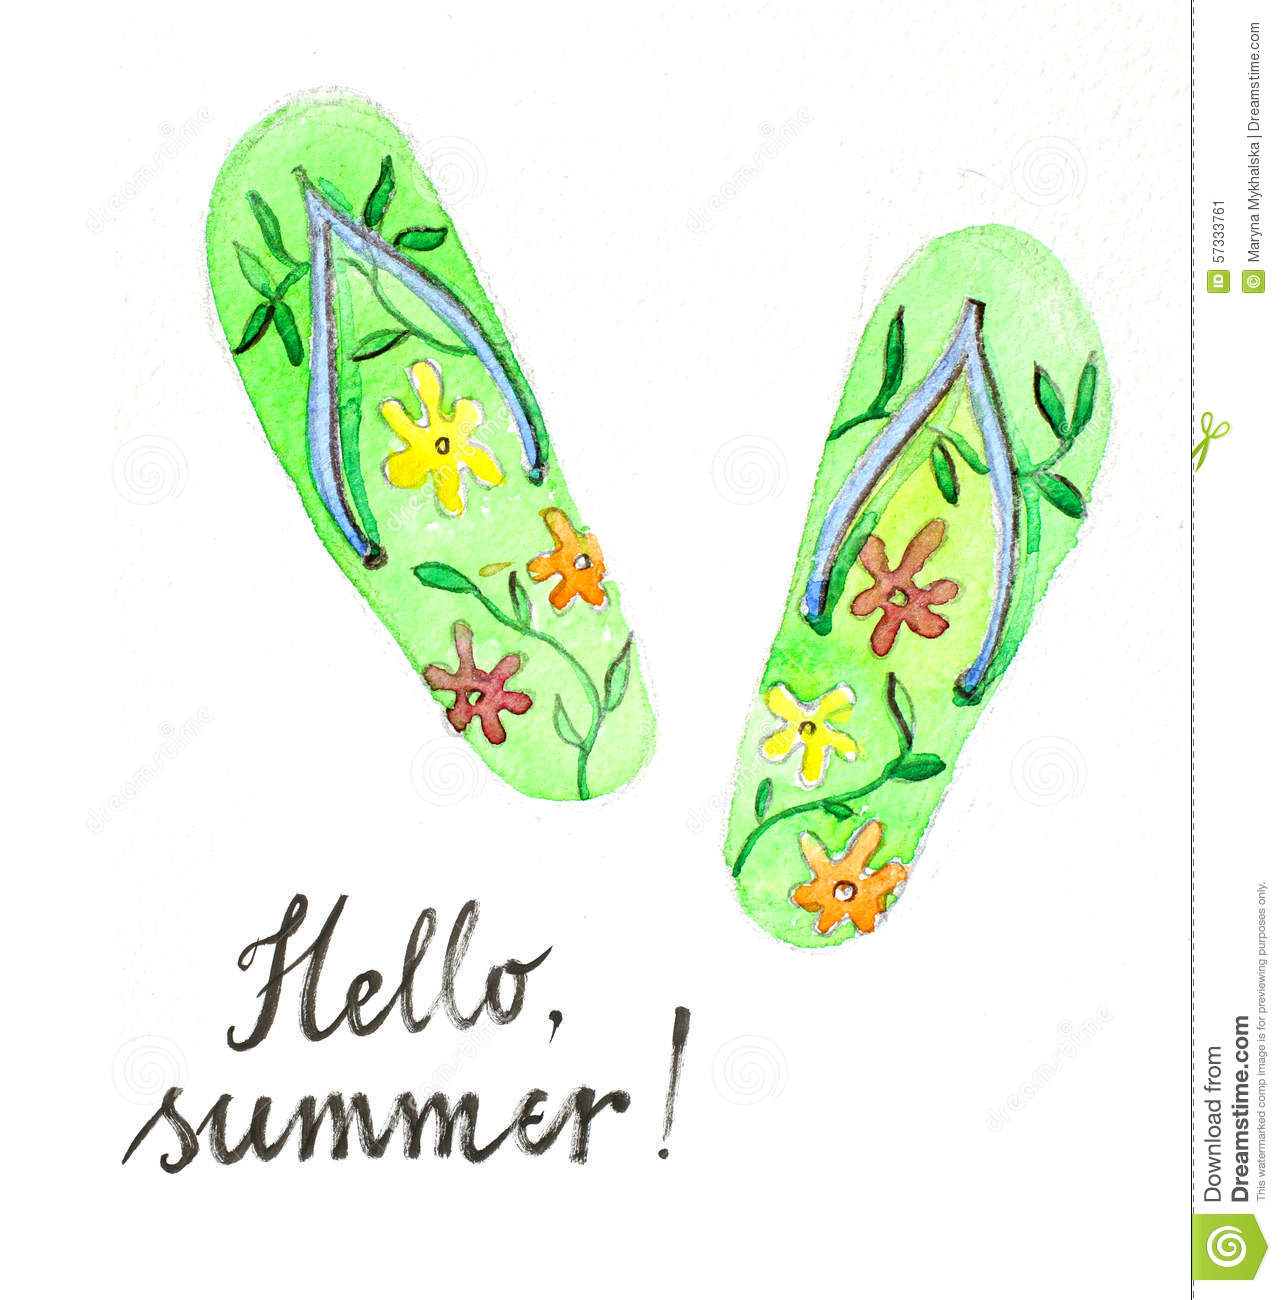 8f79f8641 Watercolor hand drawn flip flops - Illustration. More similar stock  illustrations